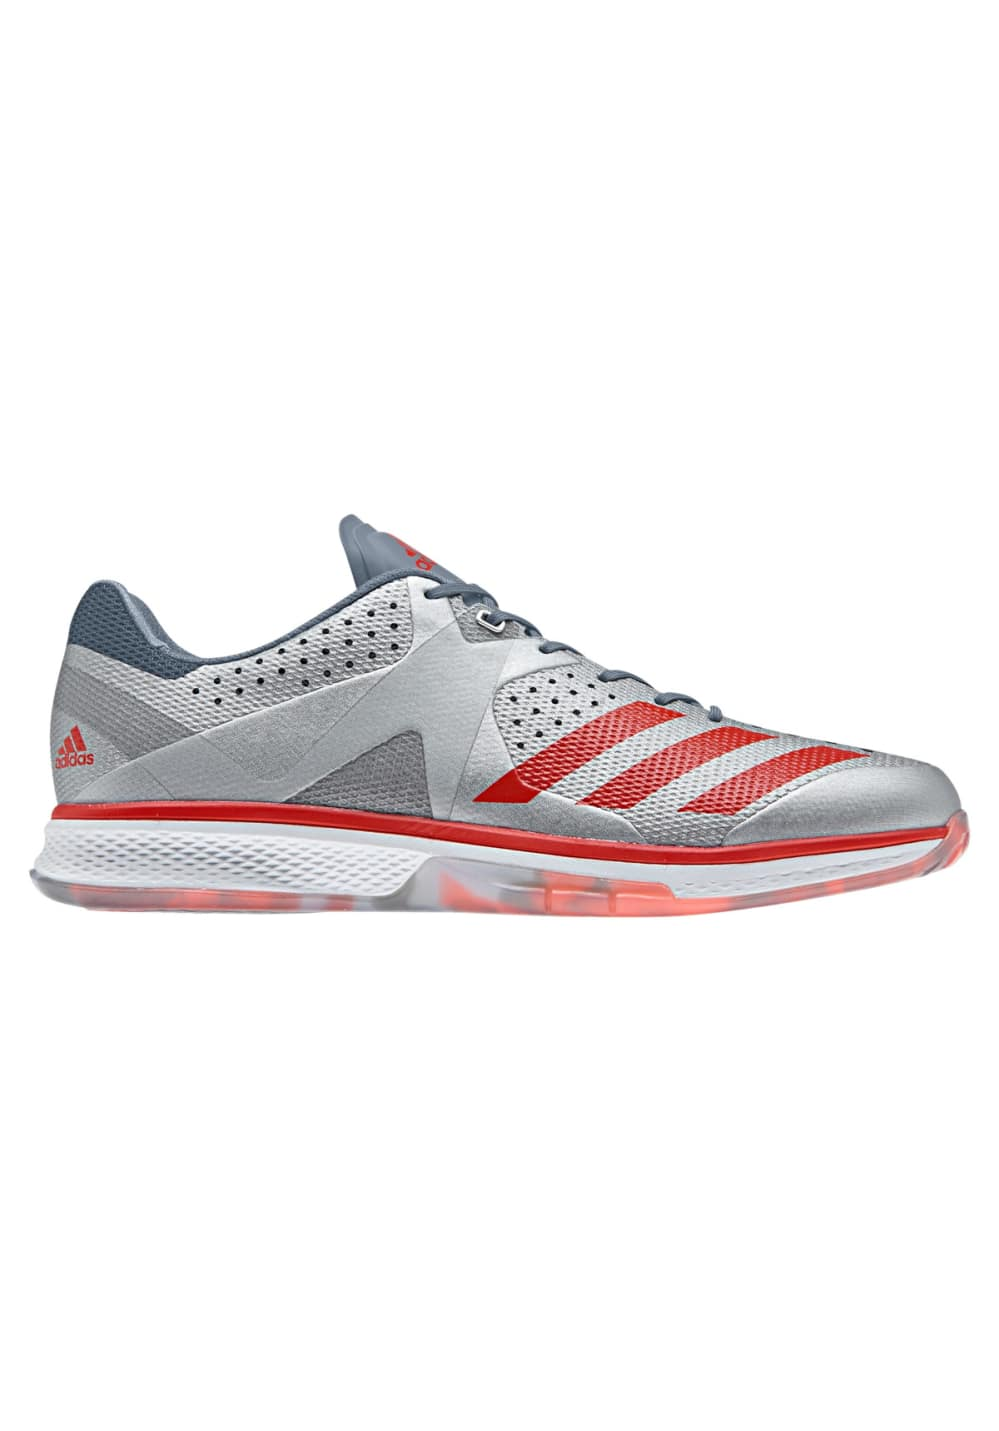 adidas Counterblast Chaussures handball pour Homme Argent